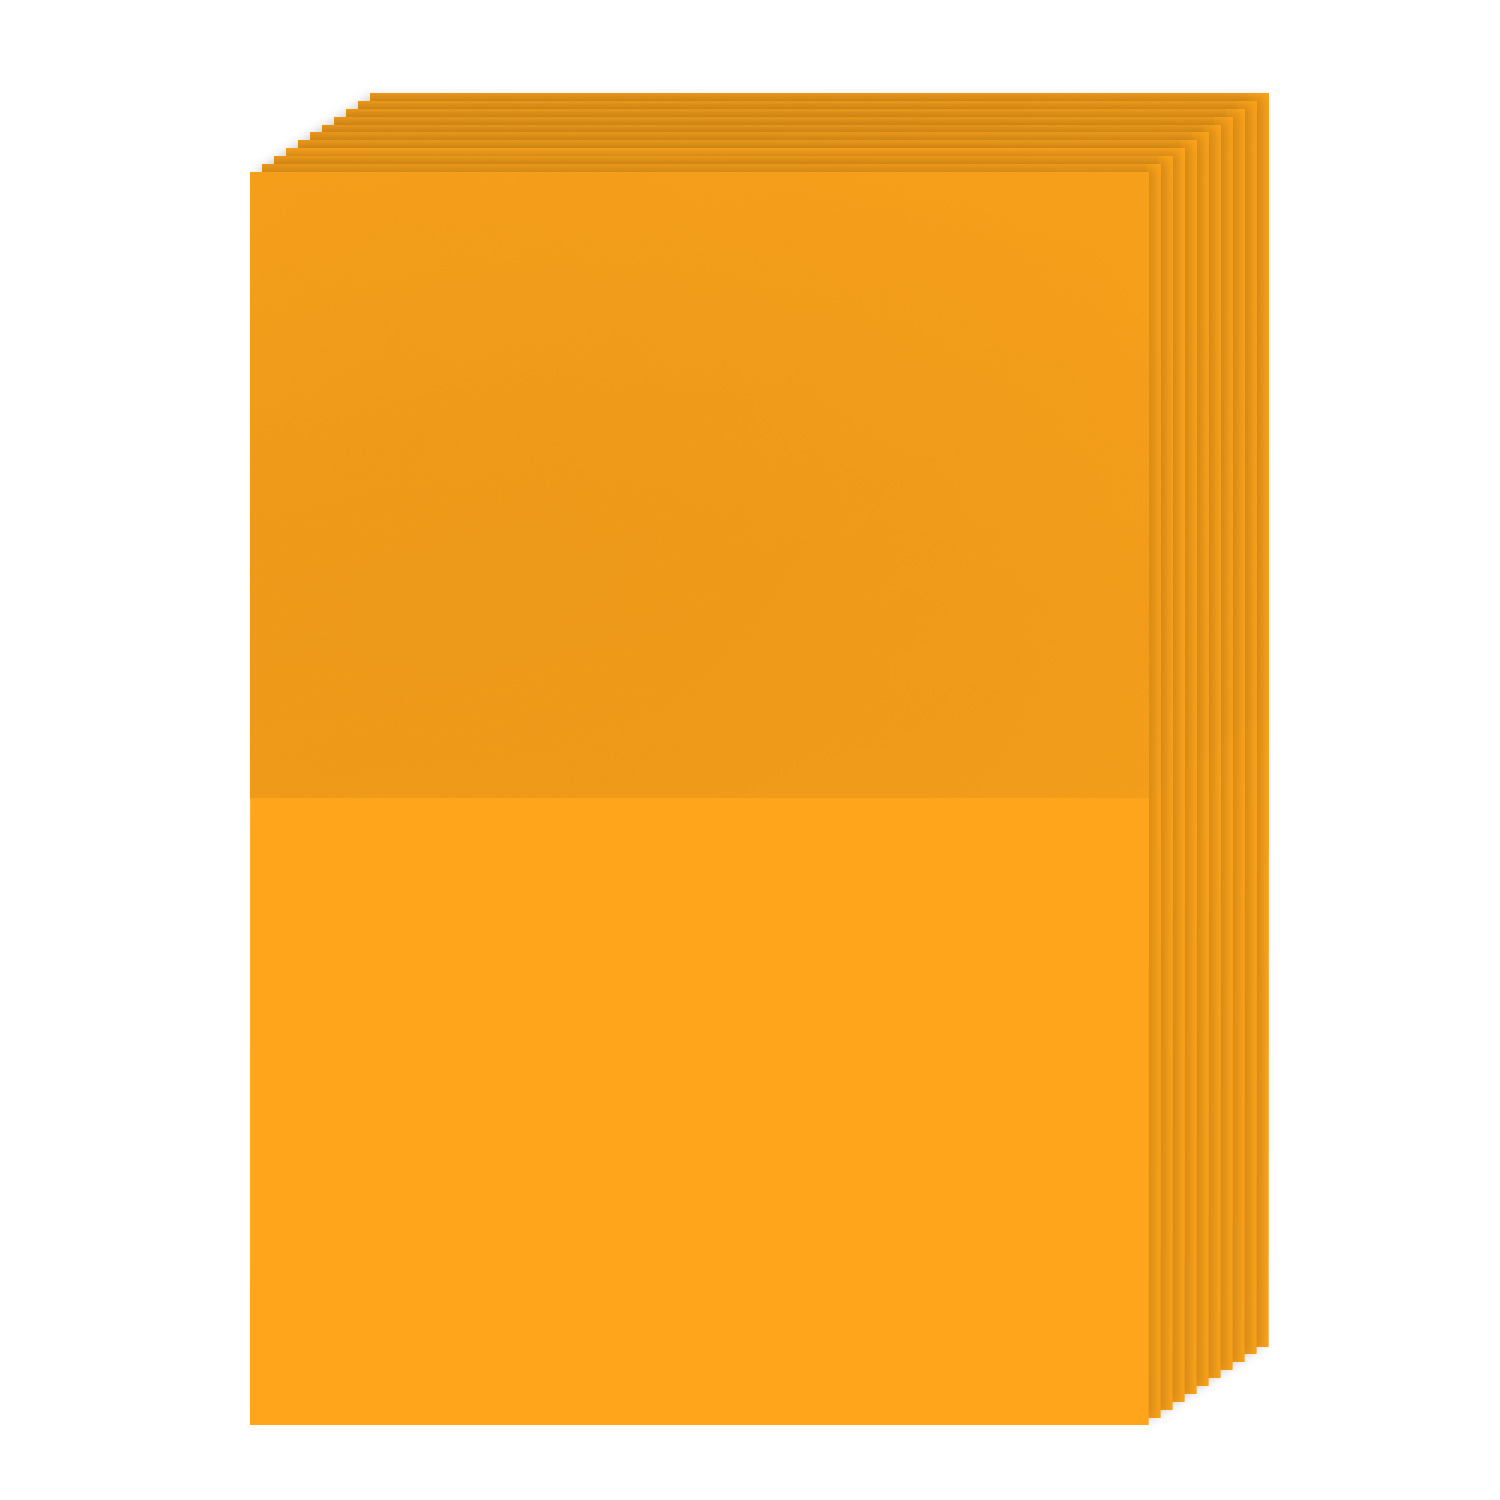 A7 Bright Color Folding Greeting Cards